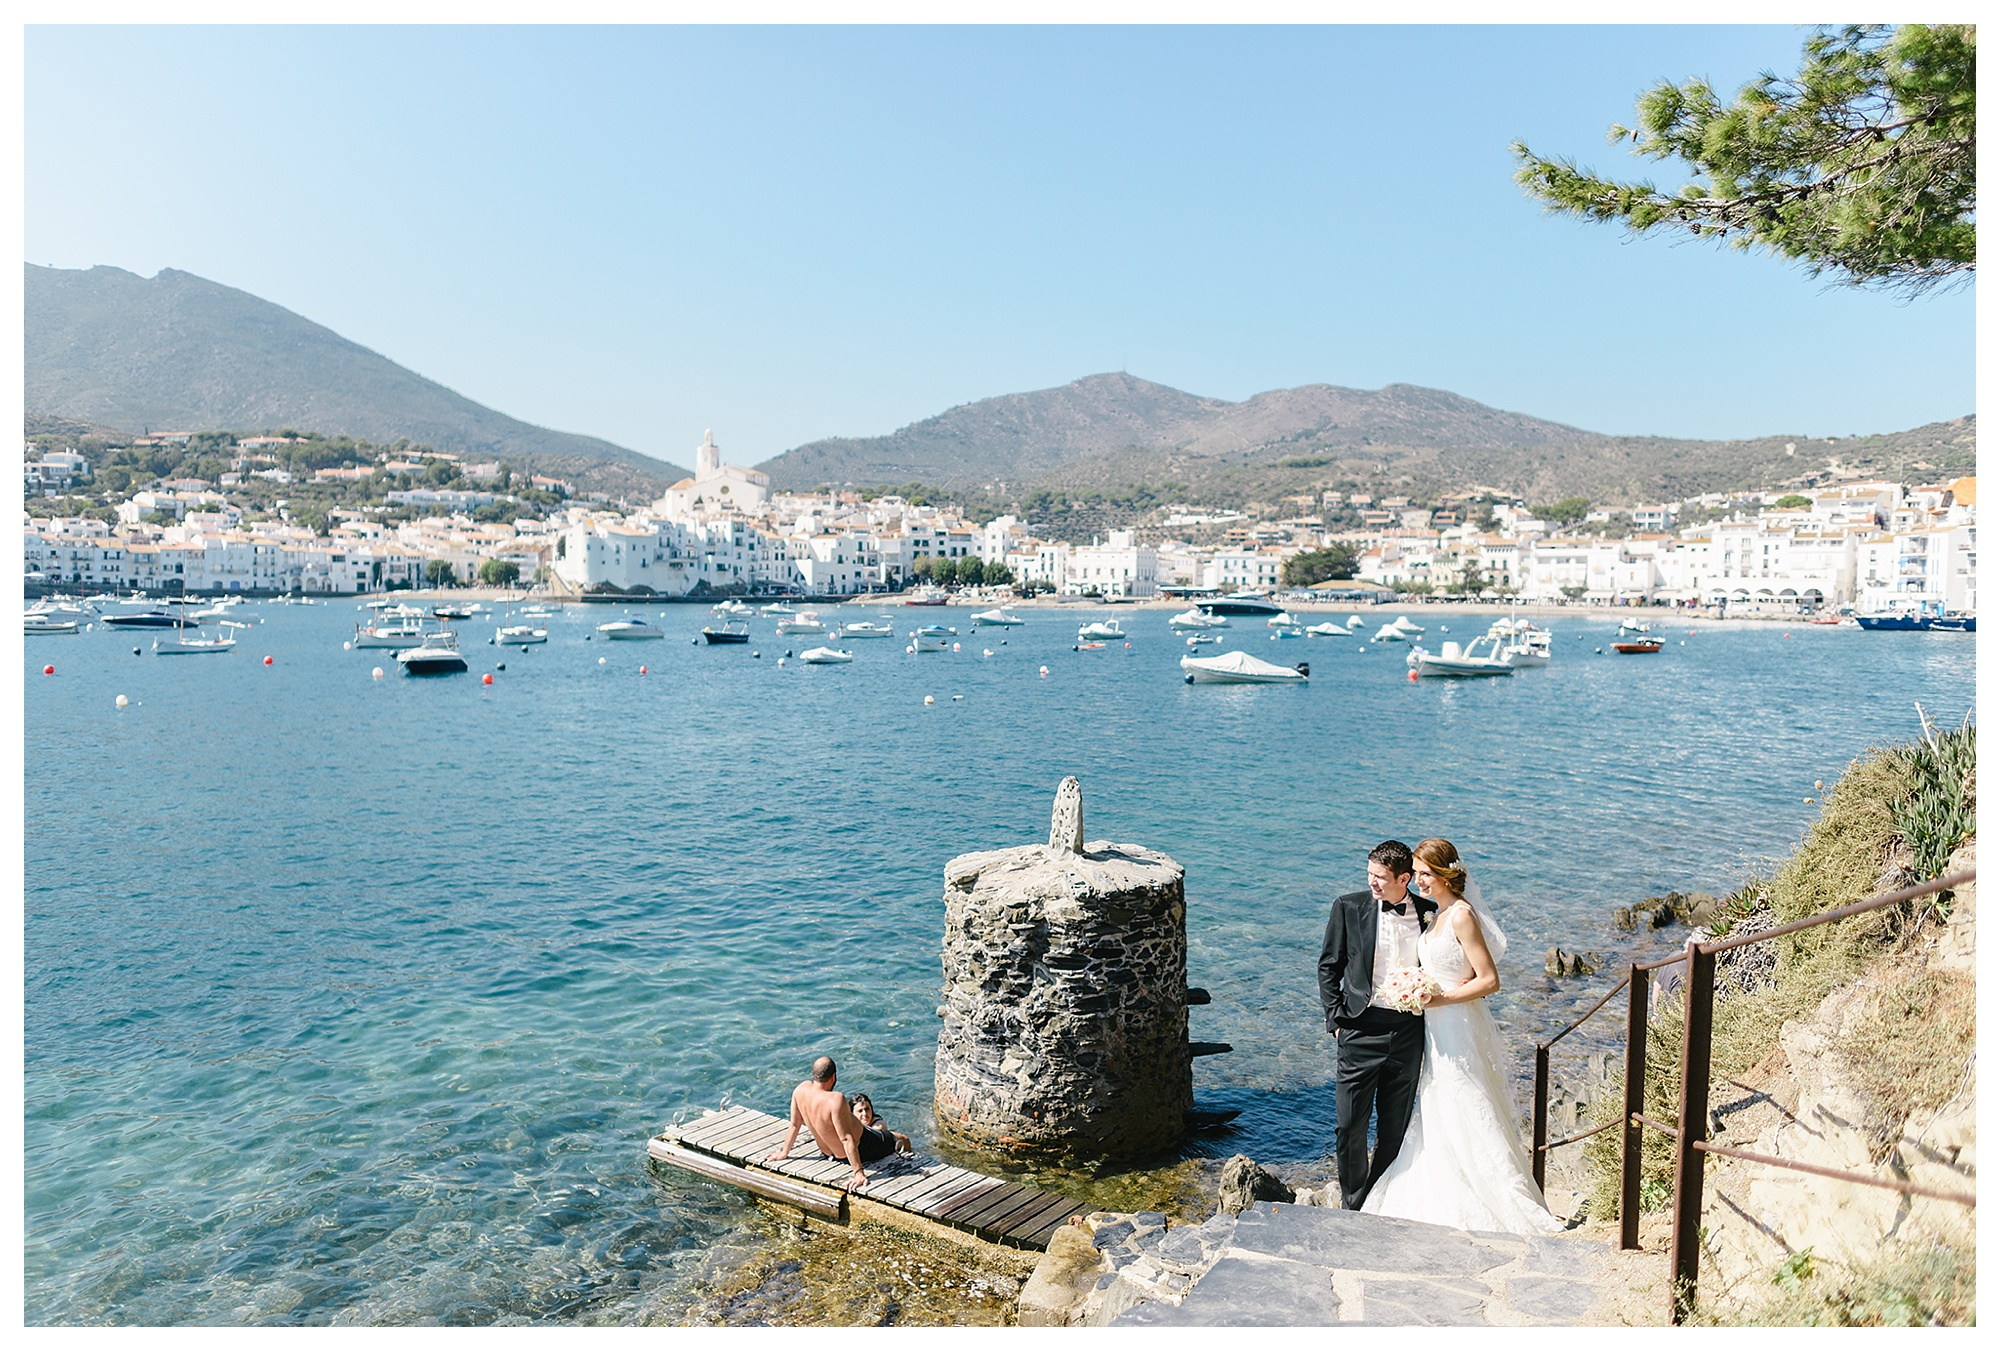 Fotograf Konstanz - Wedding Spain Cadaques Elmar Feuerbacher Photography 28 - Als Destination Wedding Fotograf in Cadaqués, Spanien  - 28 -